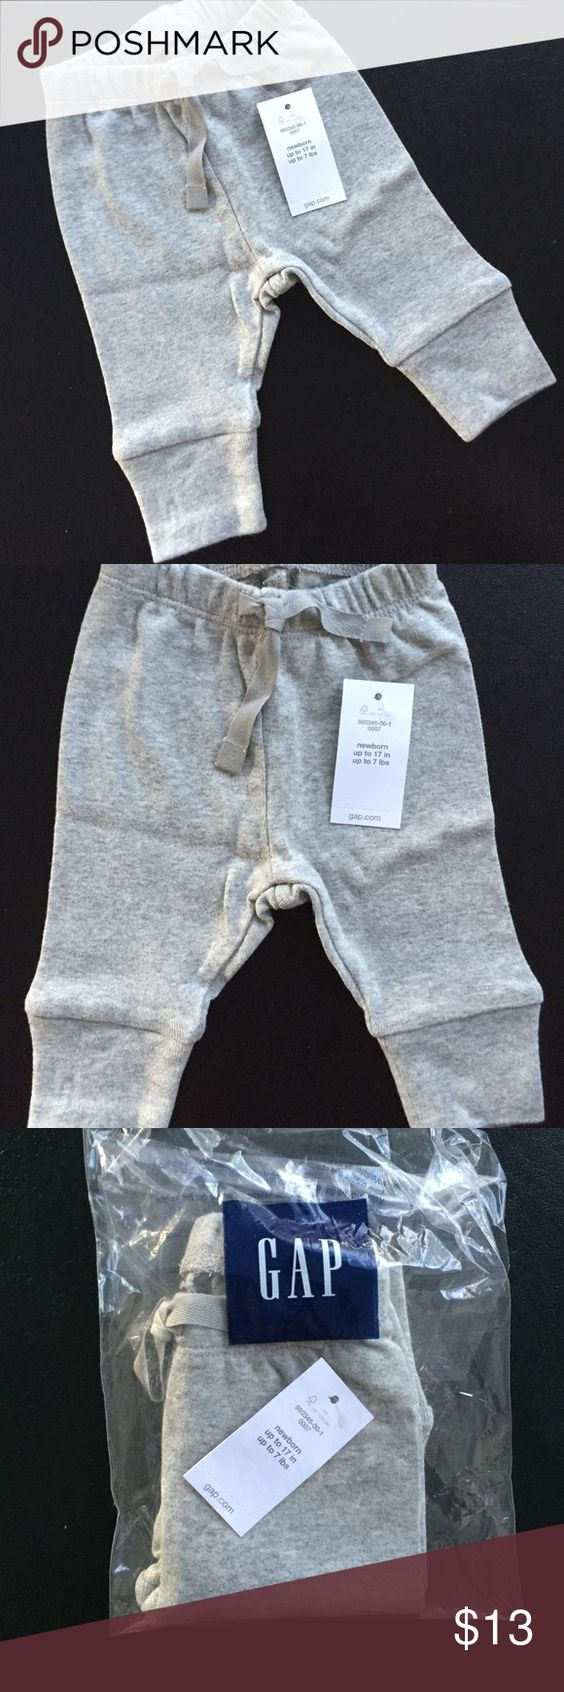 Gap Baby Pant These give me baby fever 🙈 so tiny and cute. GAP Bottoms